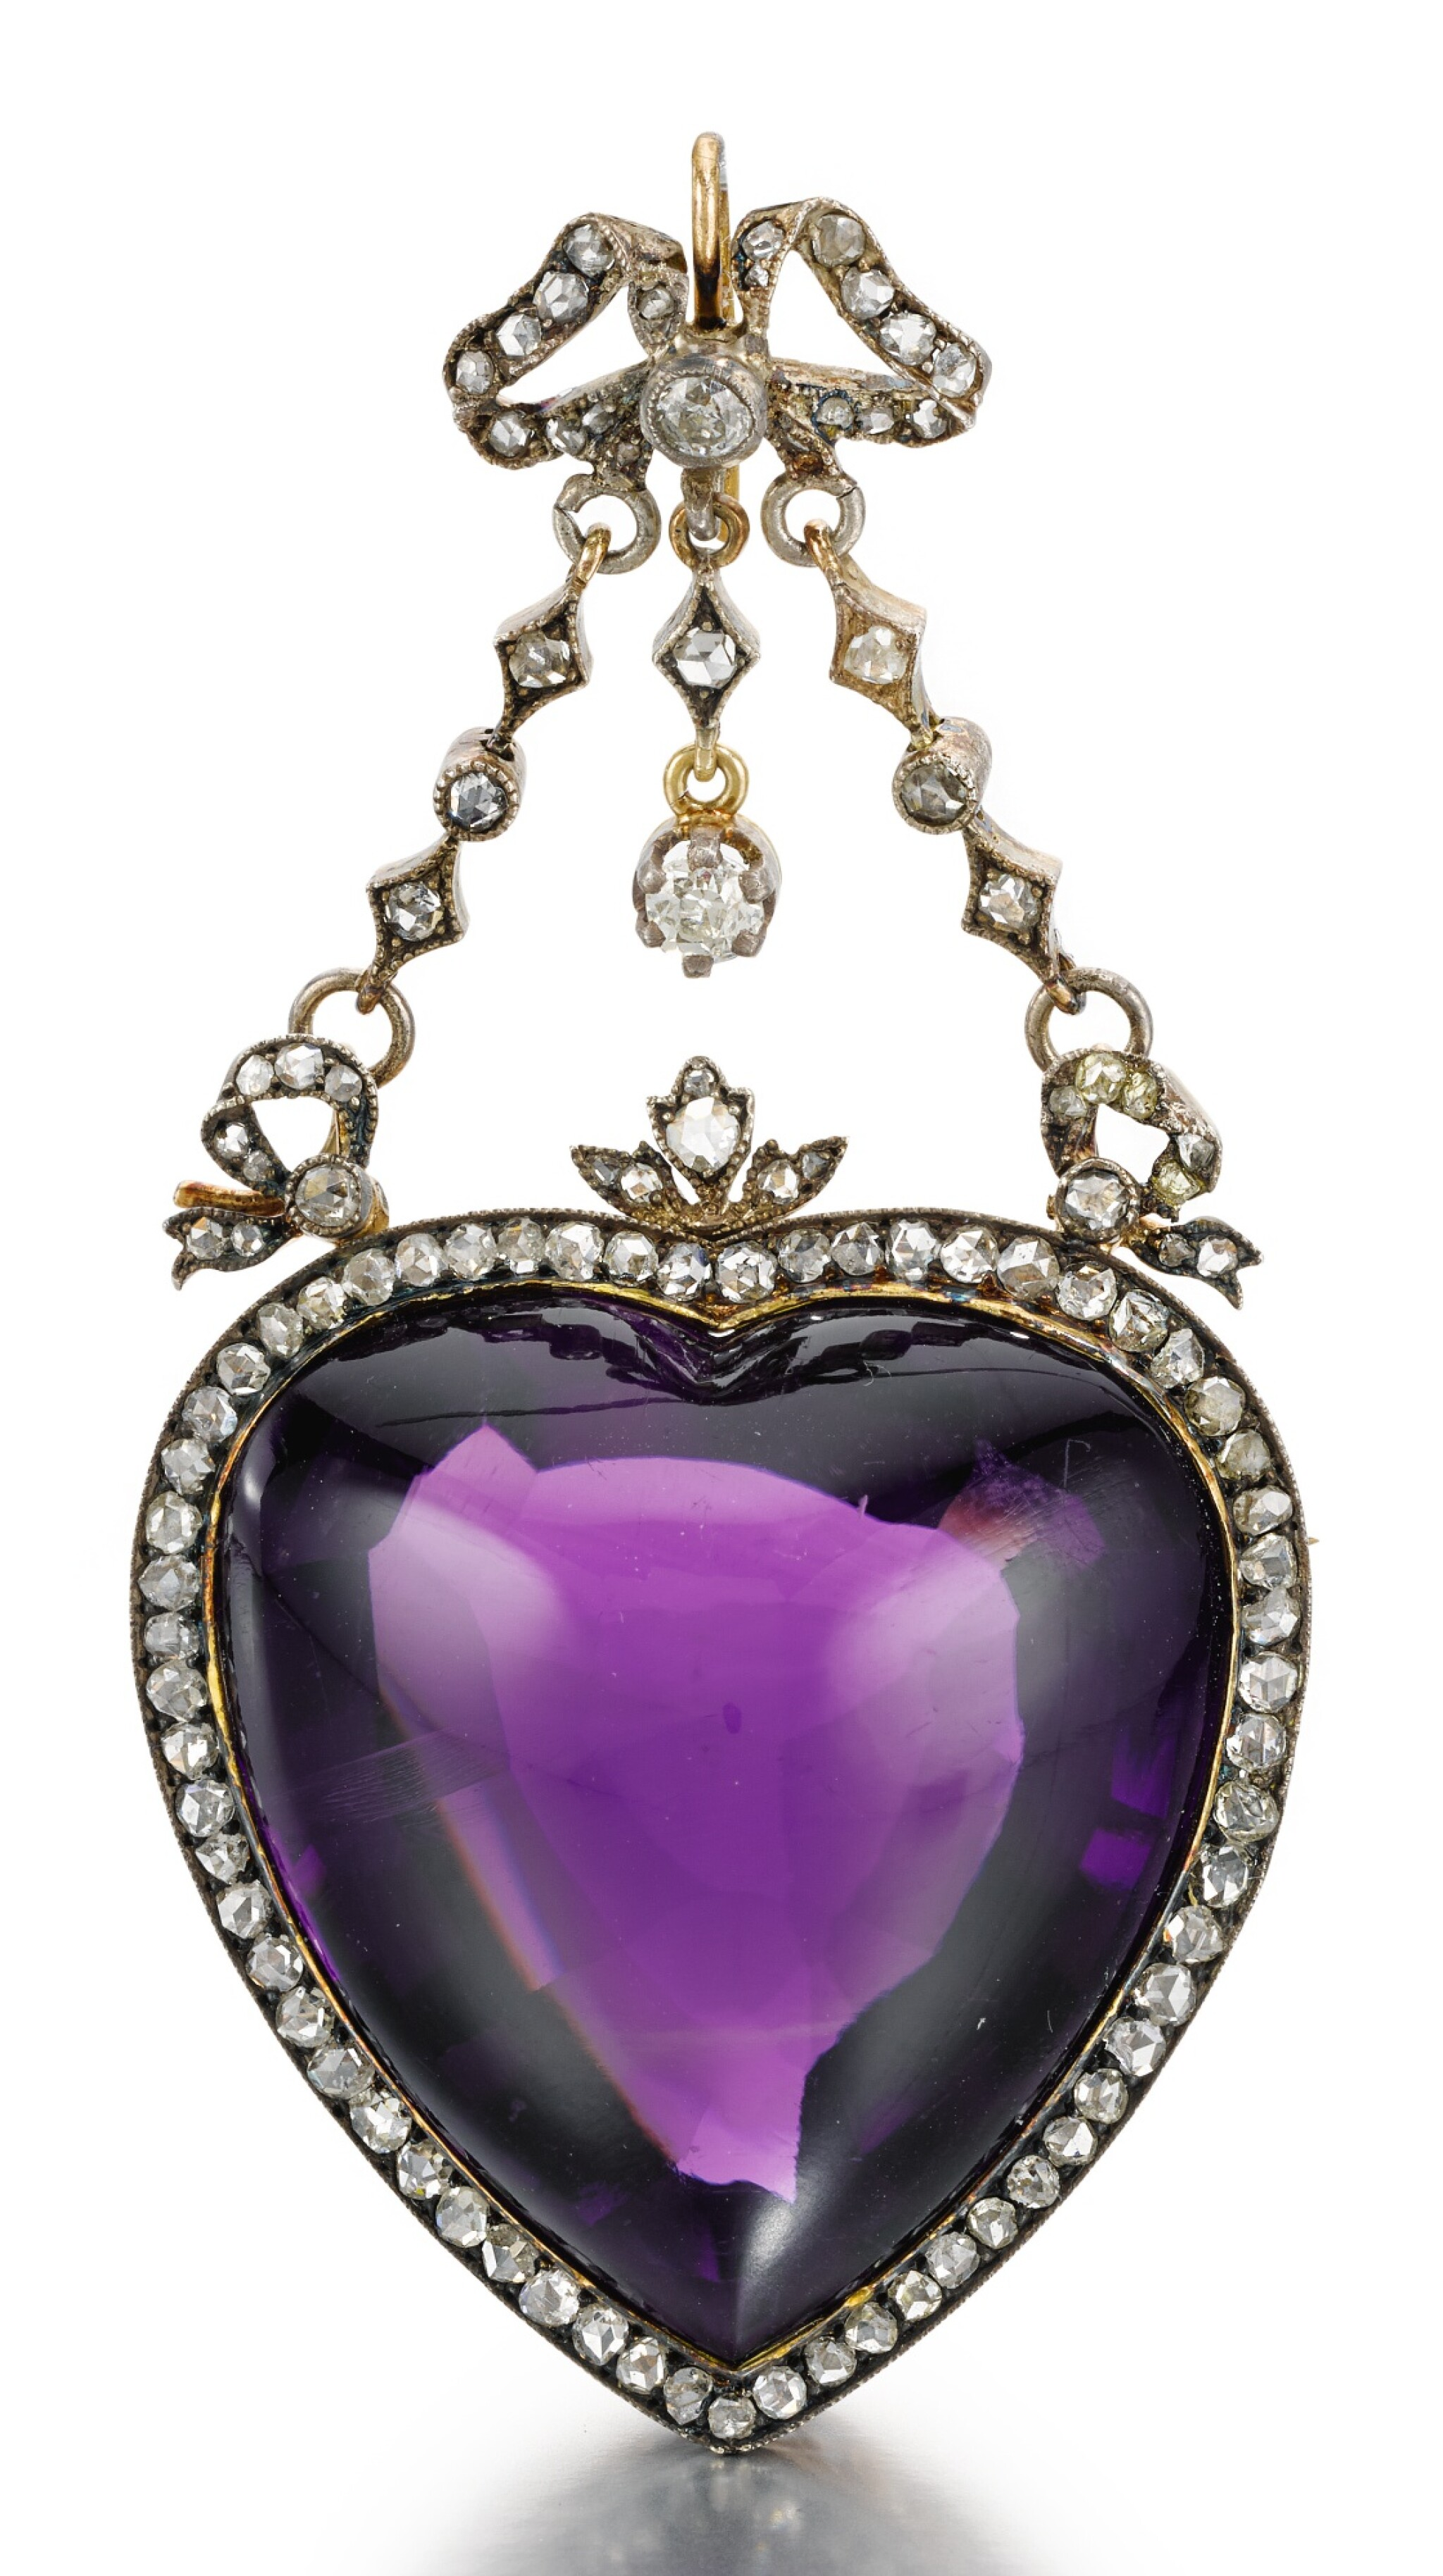 A FABERGÉ JEWELLED SILVER-TOPPED GOLD AND AMETHYST PENDANT BROOCH, MOSCOW, 1899-1908